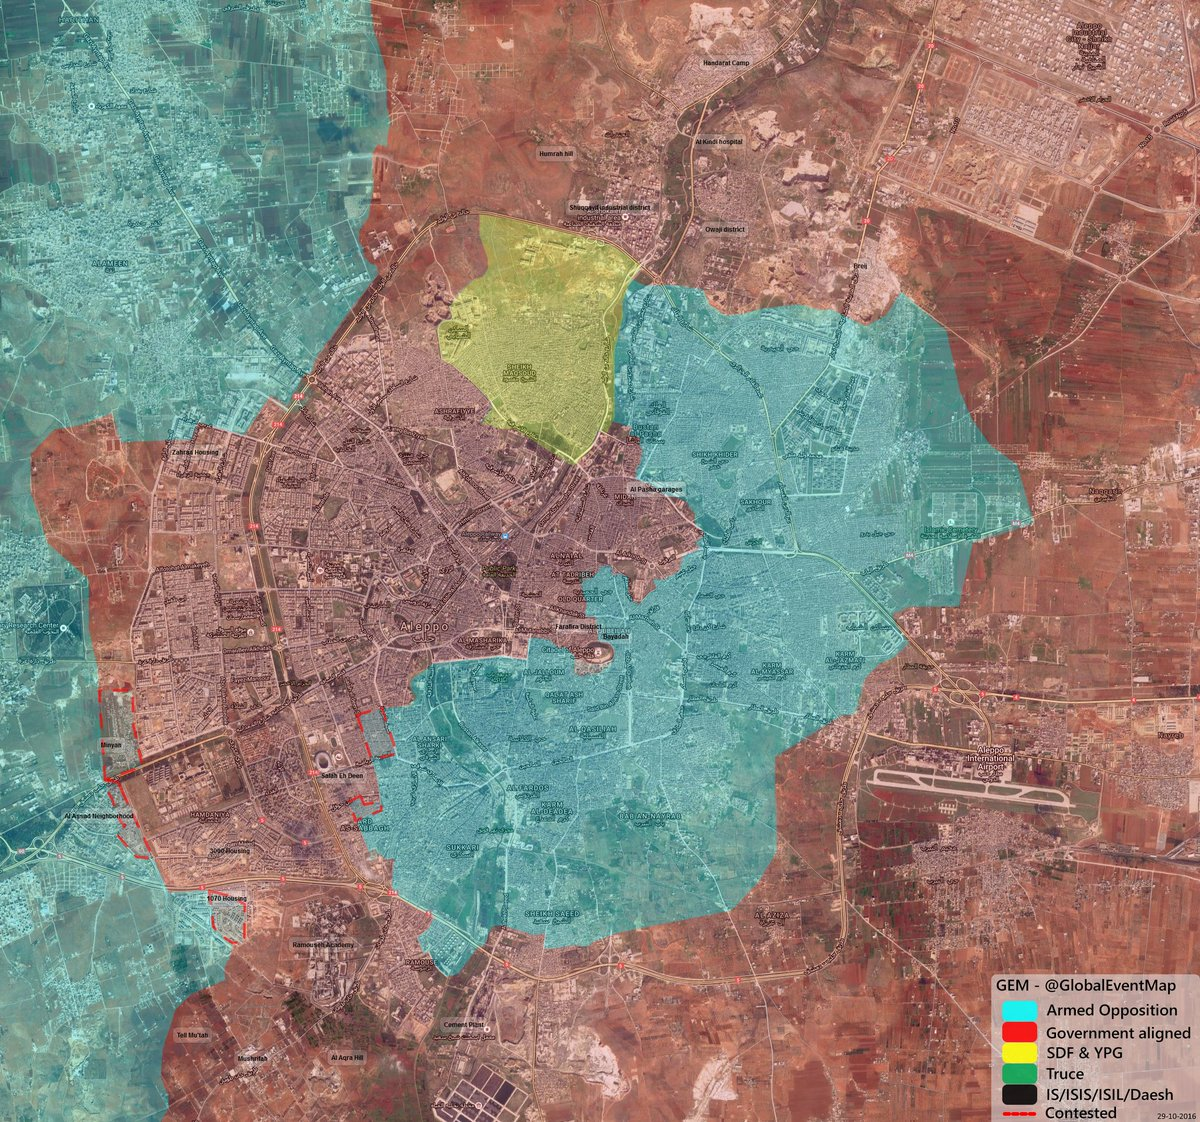 Overview of Military Situation in Aleppo City on October 29-30, 2016